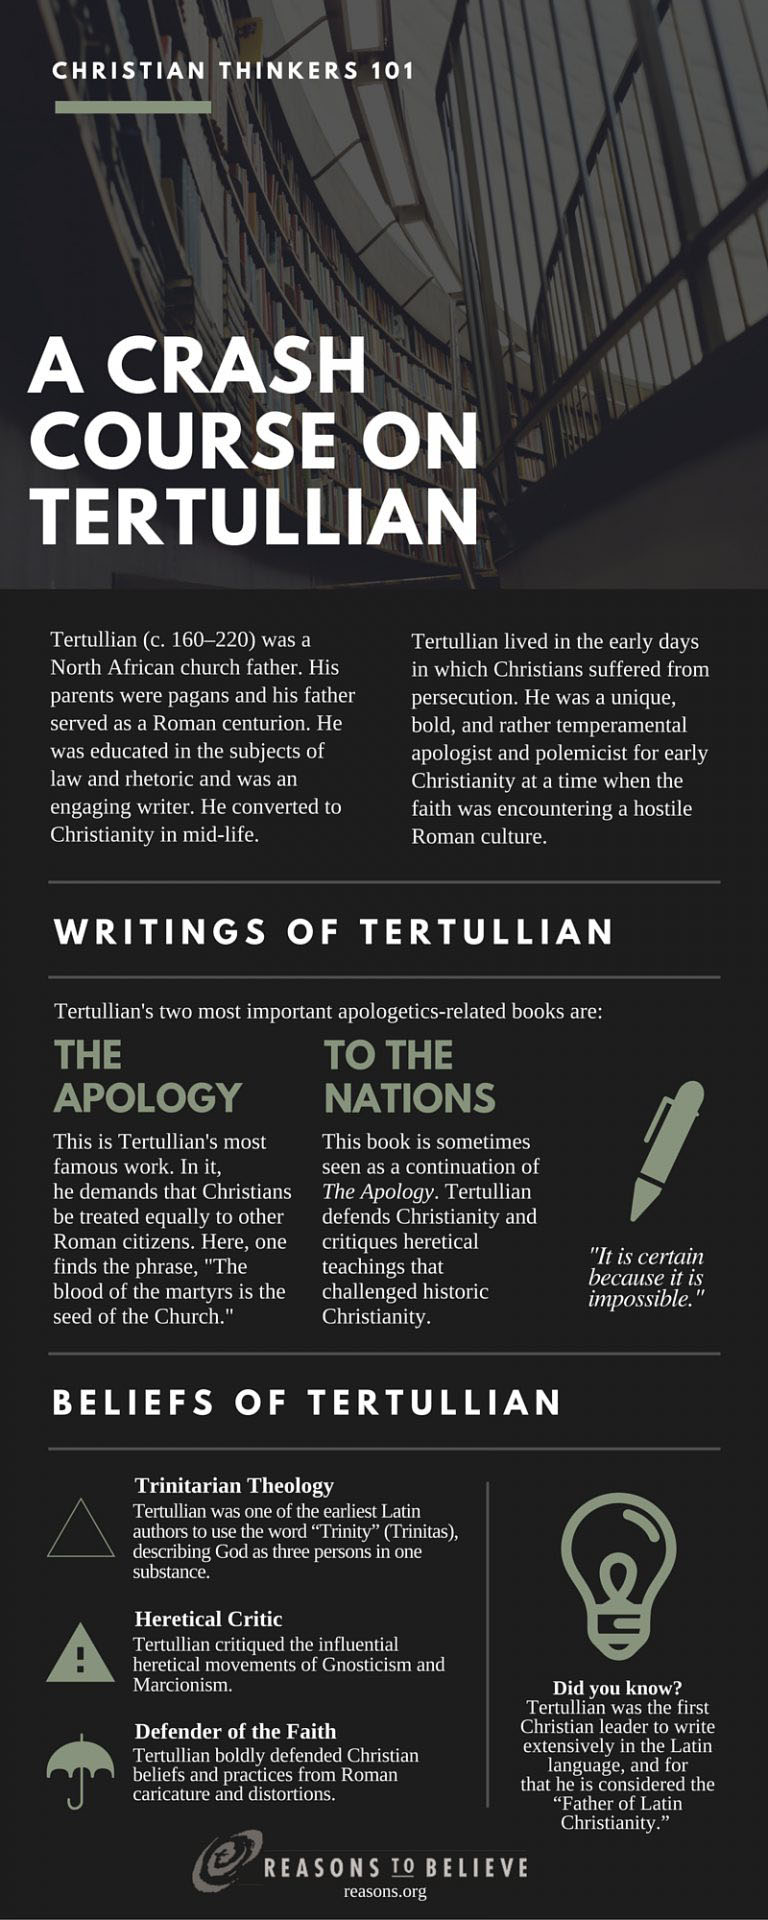 blog__inline--christian-thinkers-101-a-crash-course-on-tertullian